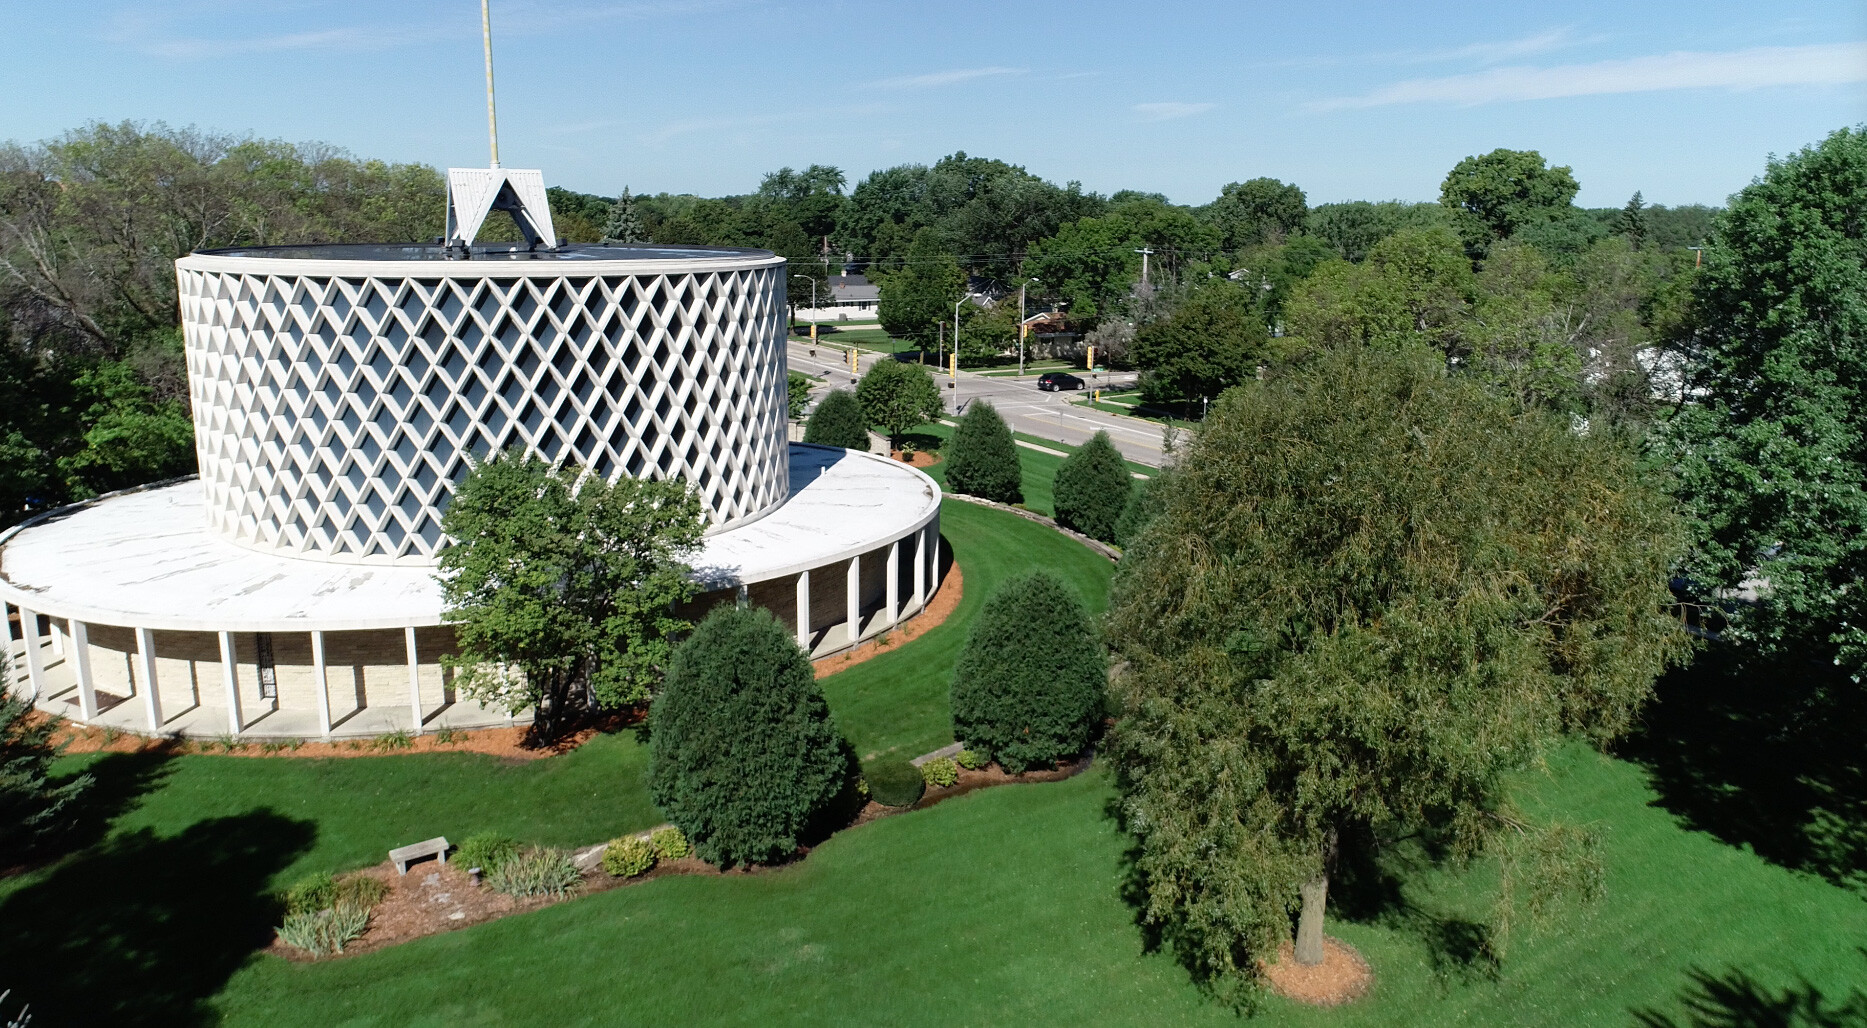 Marian University campus. Apply to Marian University for a high-quality education at an affordable cost.